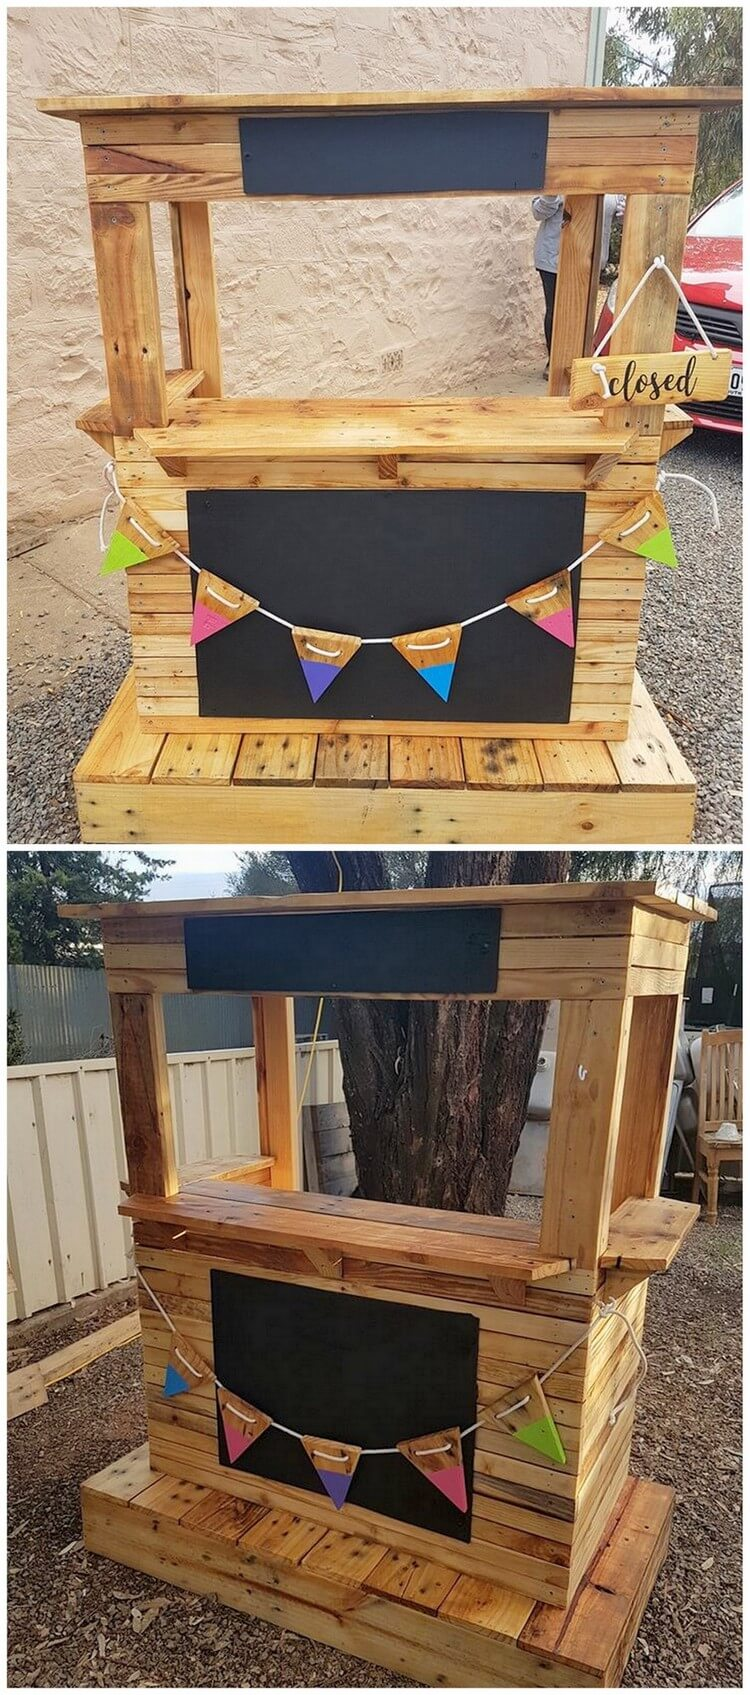 Surprising DIY Wood Pallet Ideas for this Summer | Pallet ...